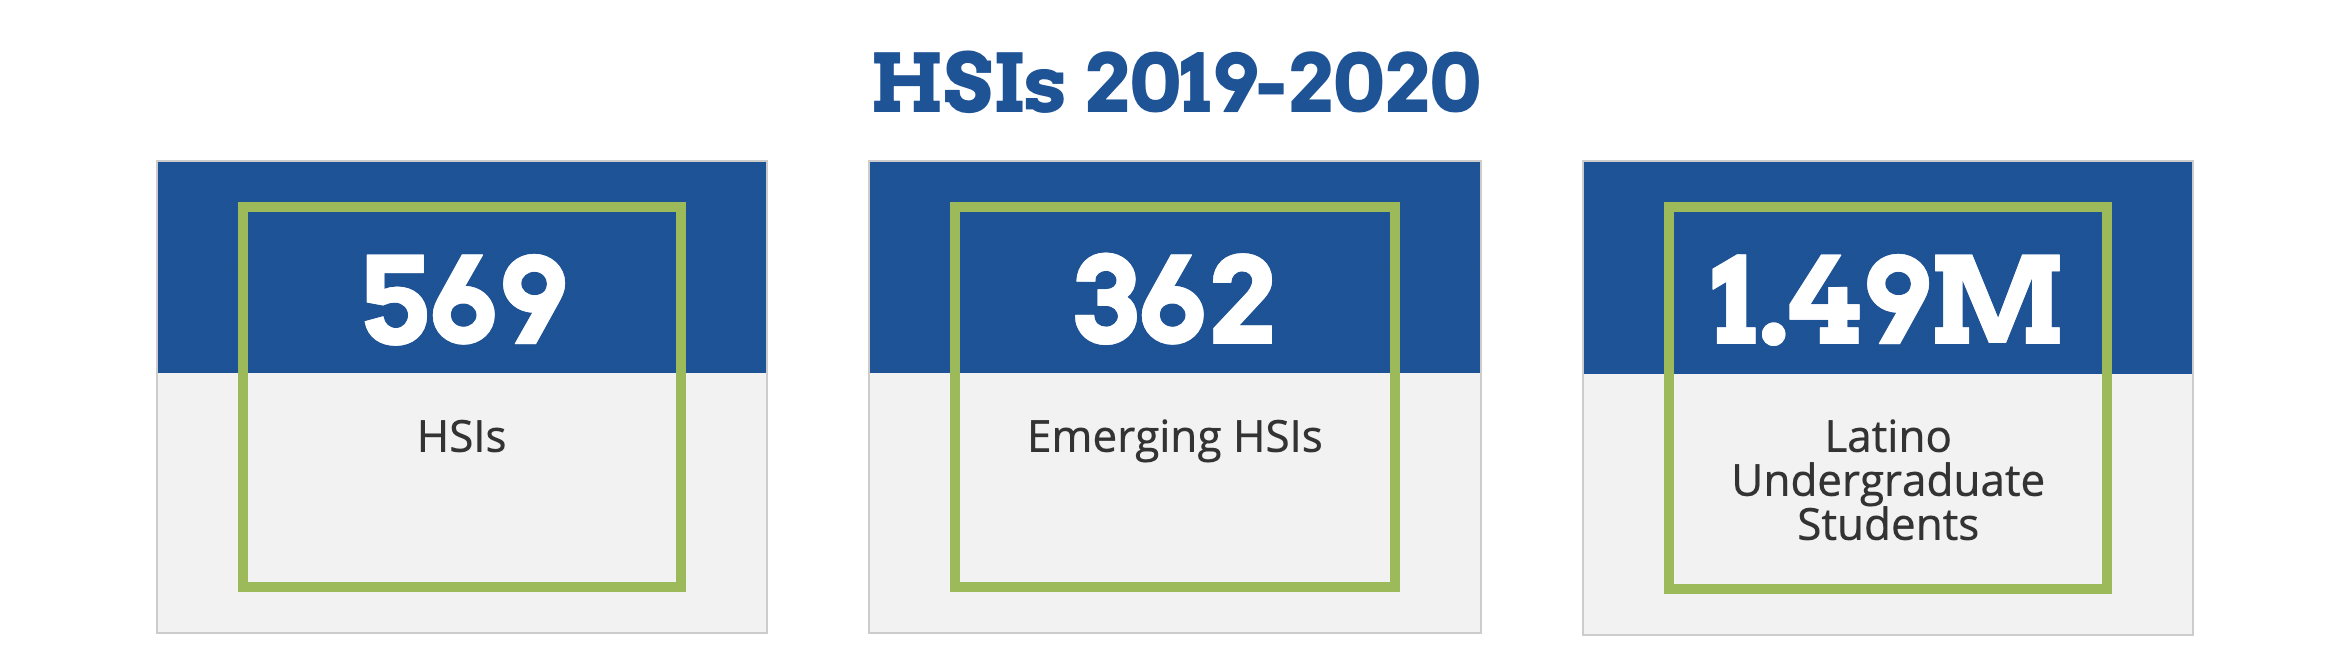 Hispanic-Serving Institutions (HSIs) 2018-2019 Stats